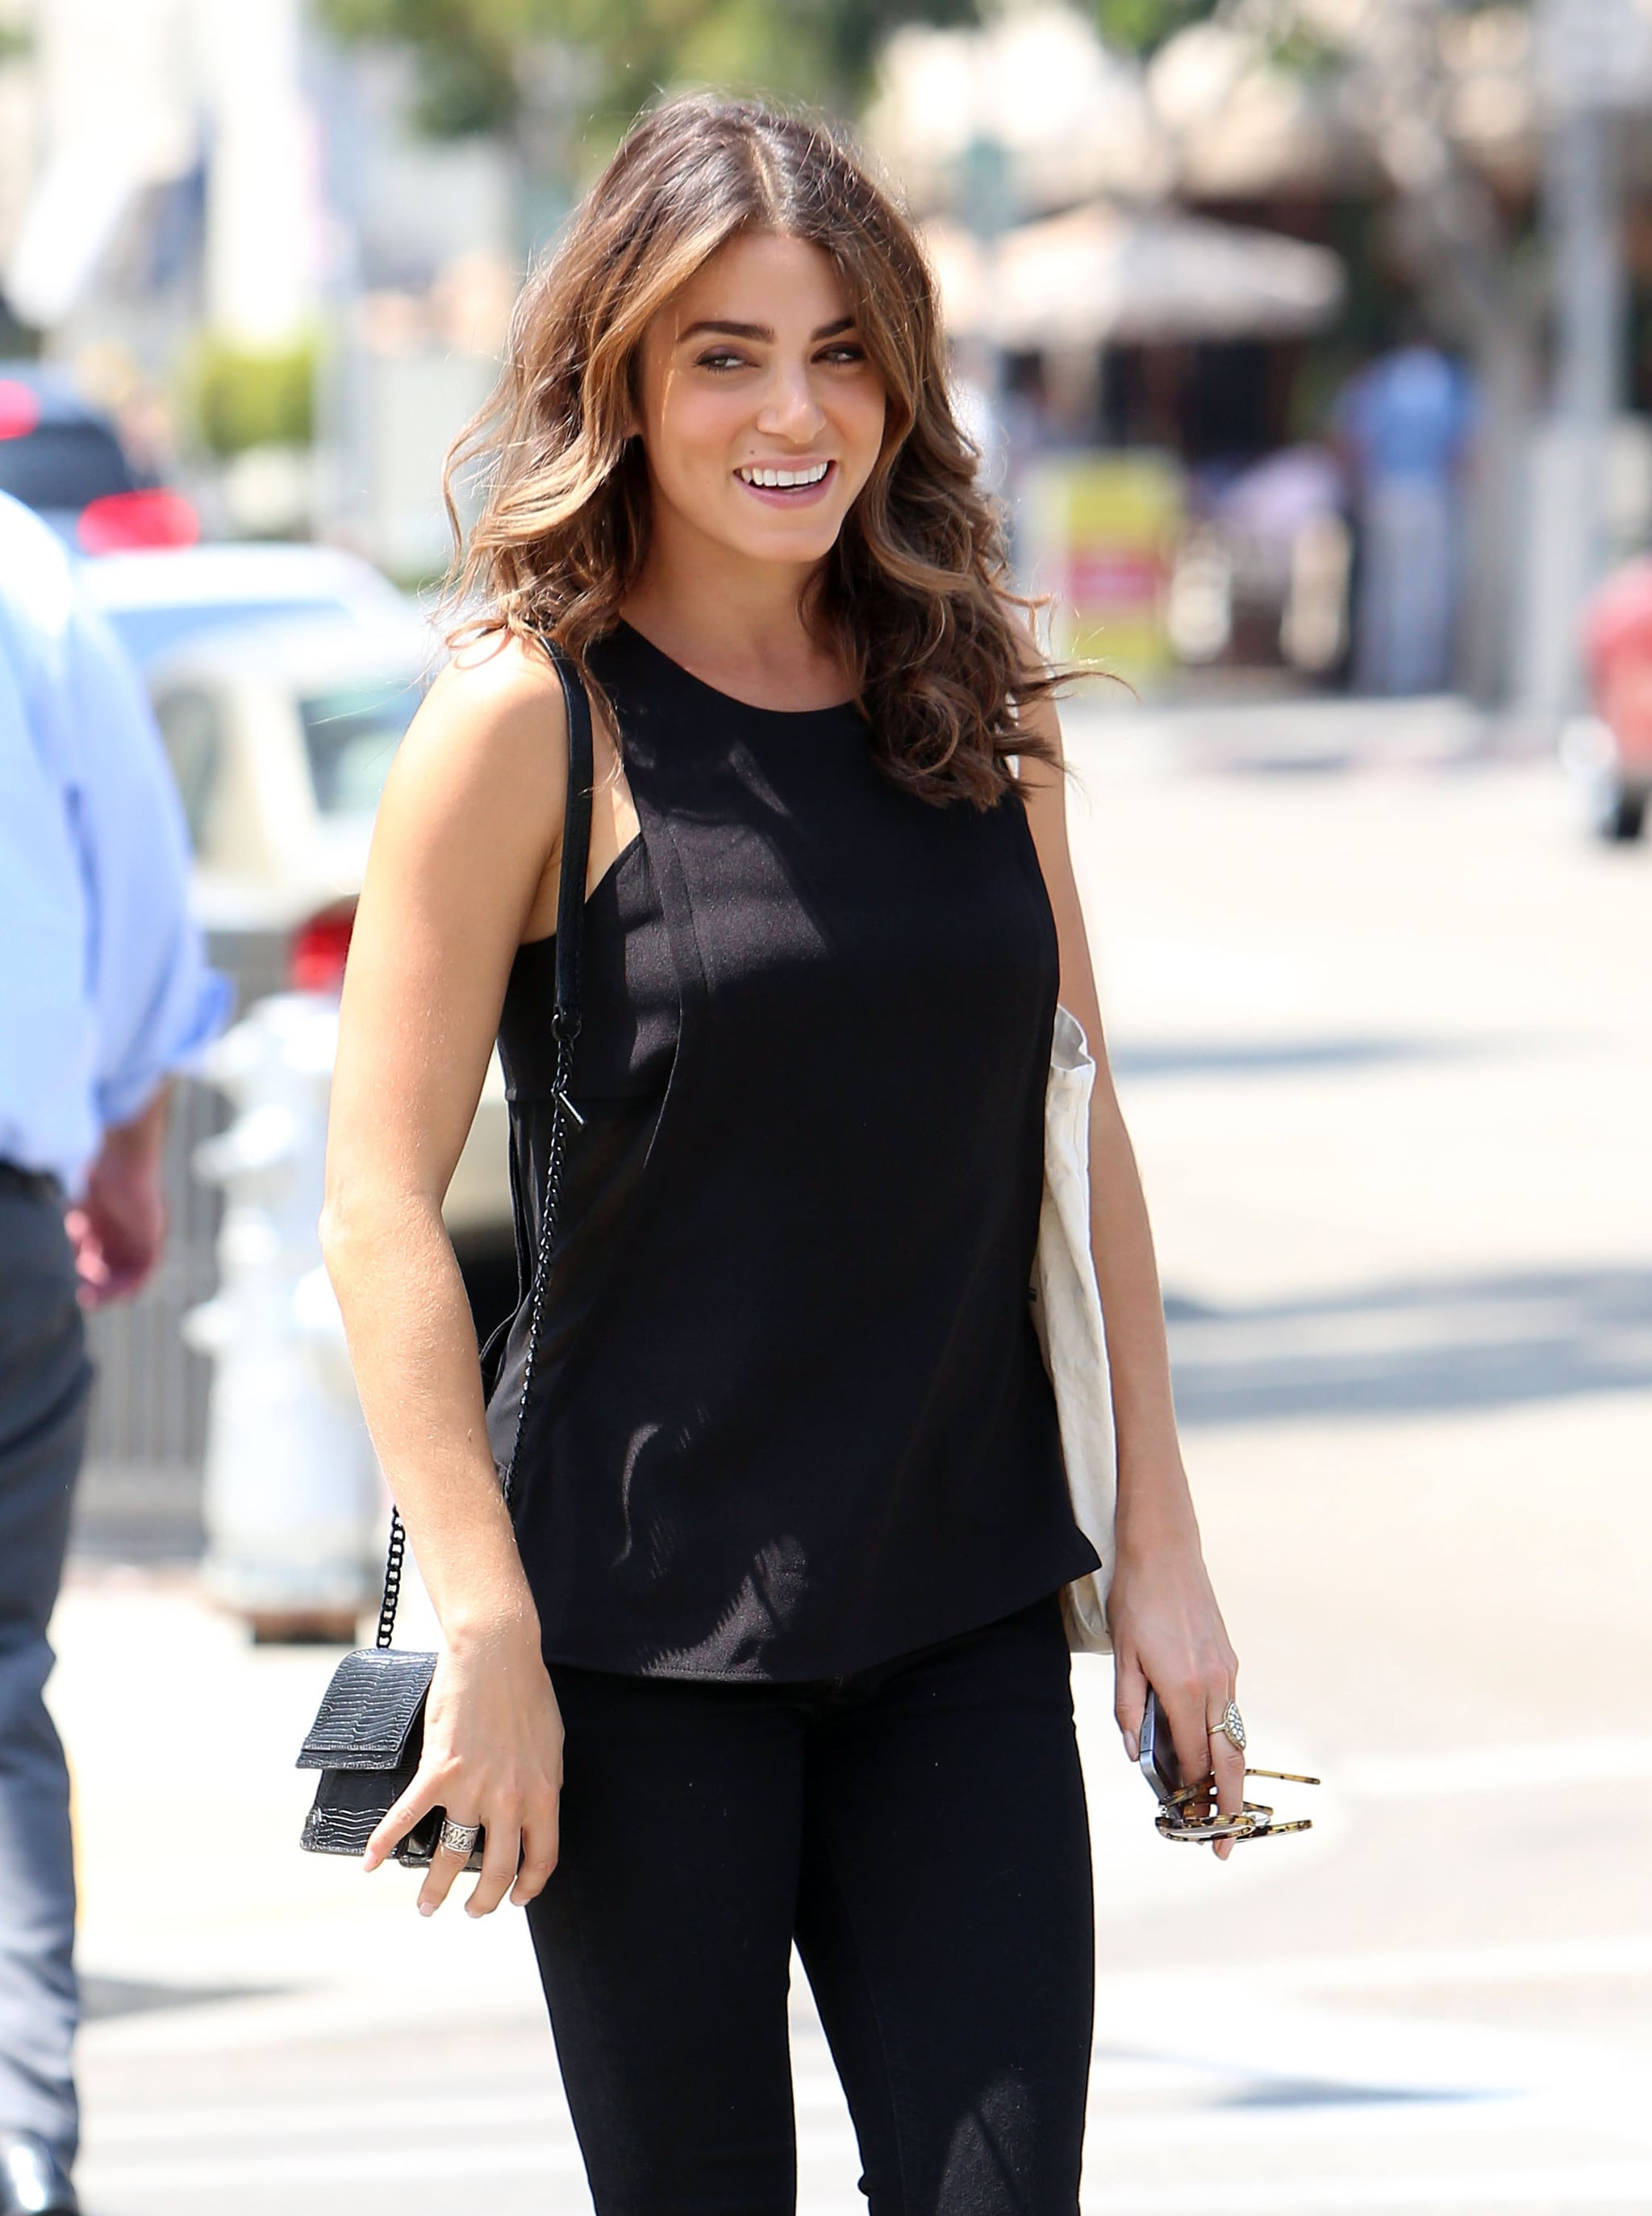 On Friday, Nikki Reed lit up with a smile when she stepped out in LA.